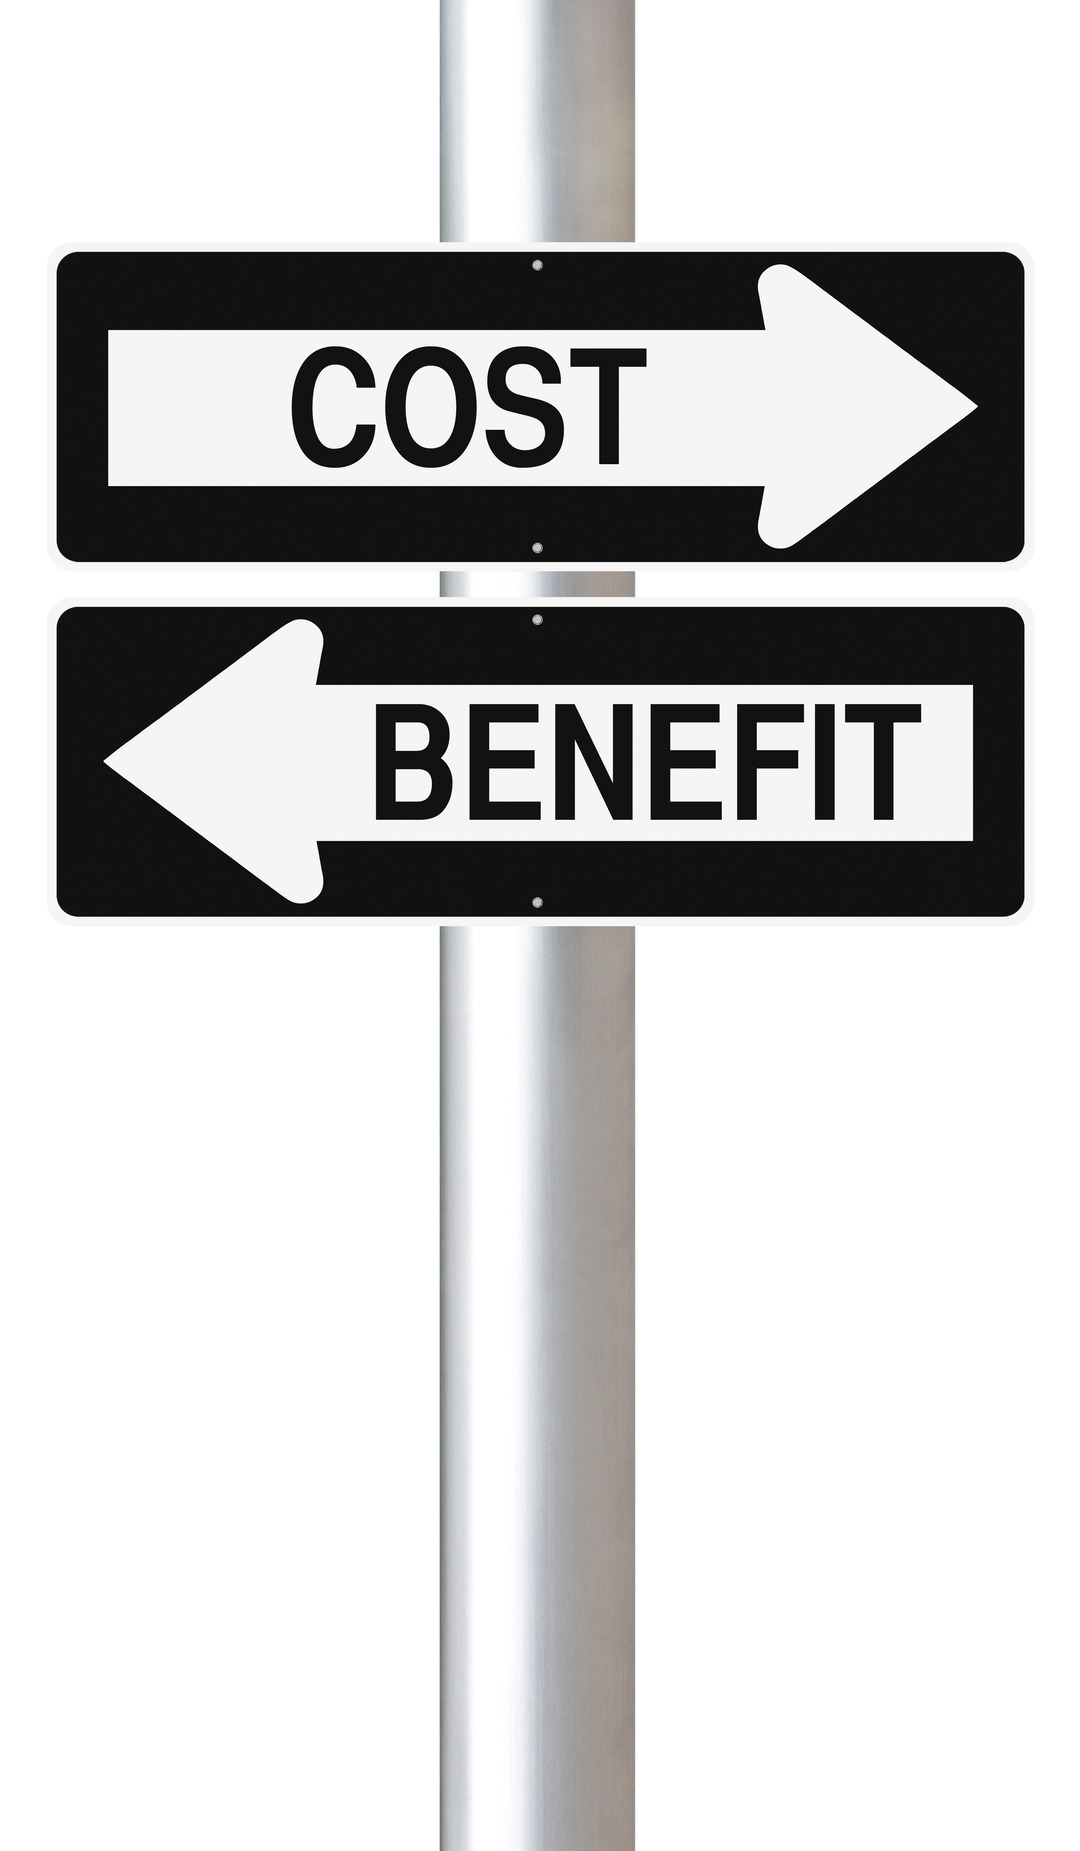 Costs And Benefits  Surface Preparation Technologies Llc. Suicidal Thought Signs Of Stroke. House Representative Signs Of Stroke. Quarry Signs Of Stroke. Spd Signs. Prop Signs. Breastfeeding Signs. Protect Signs. Salmonella Signs